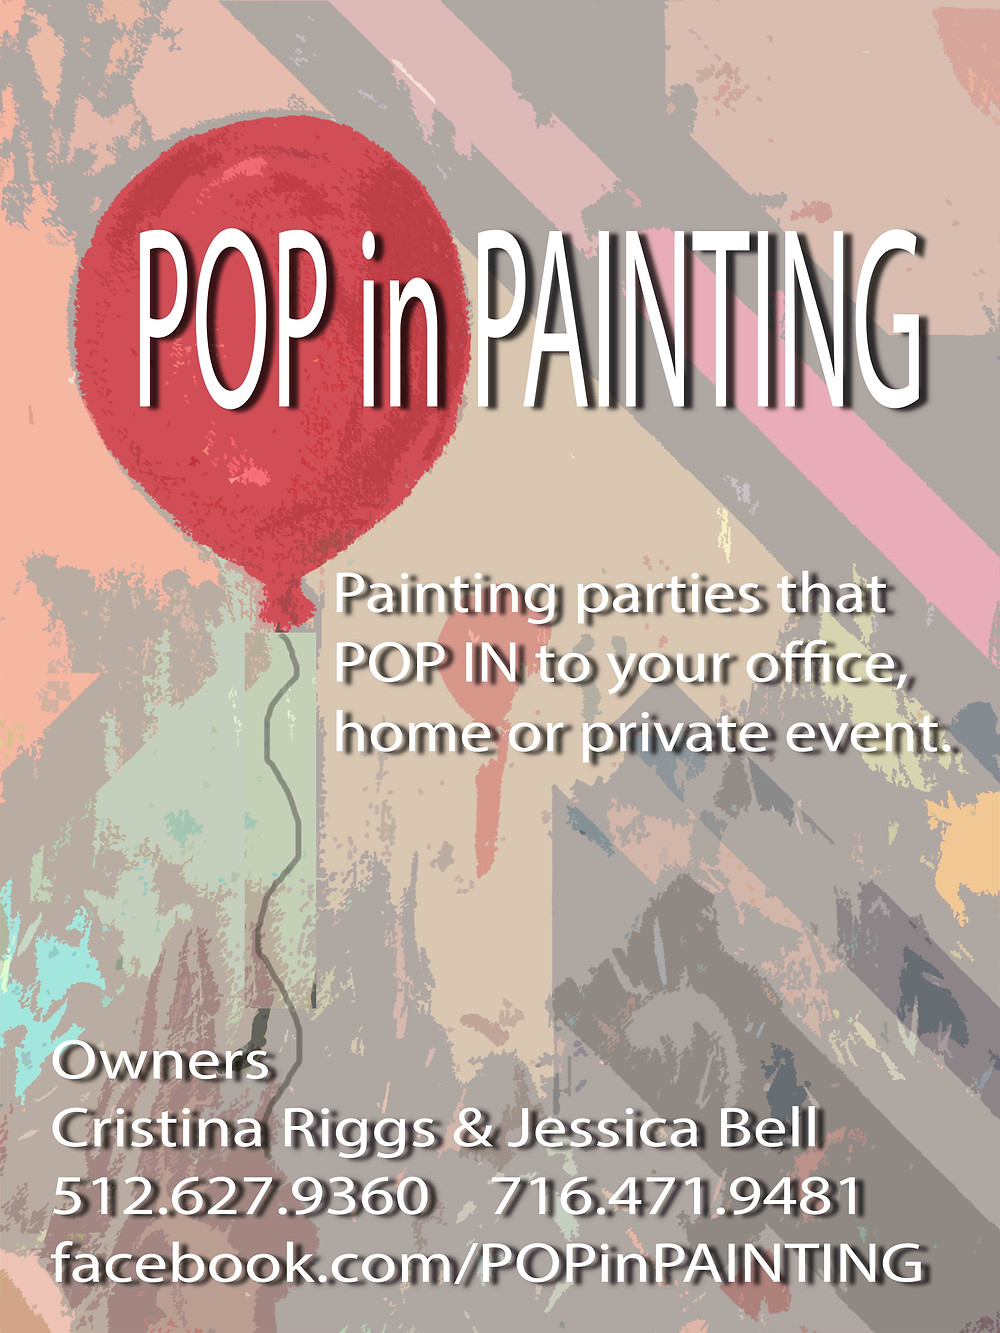 POP in PAINTING